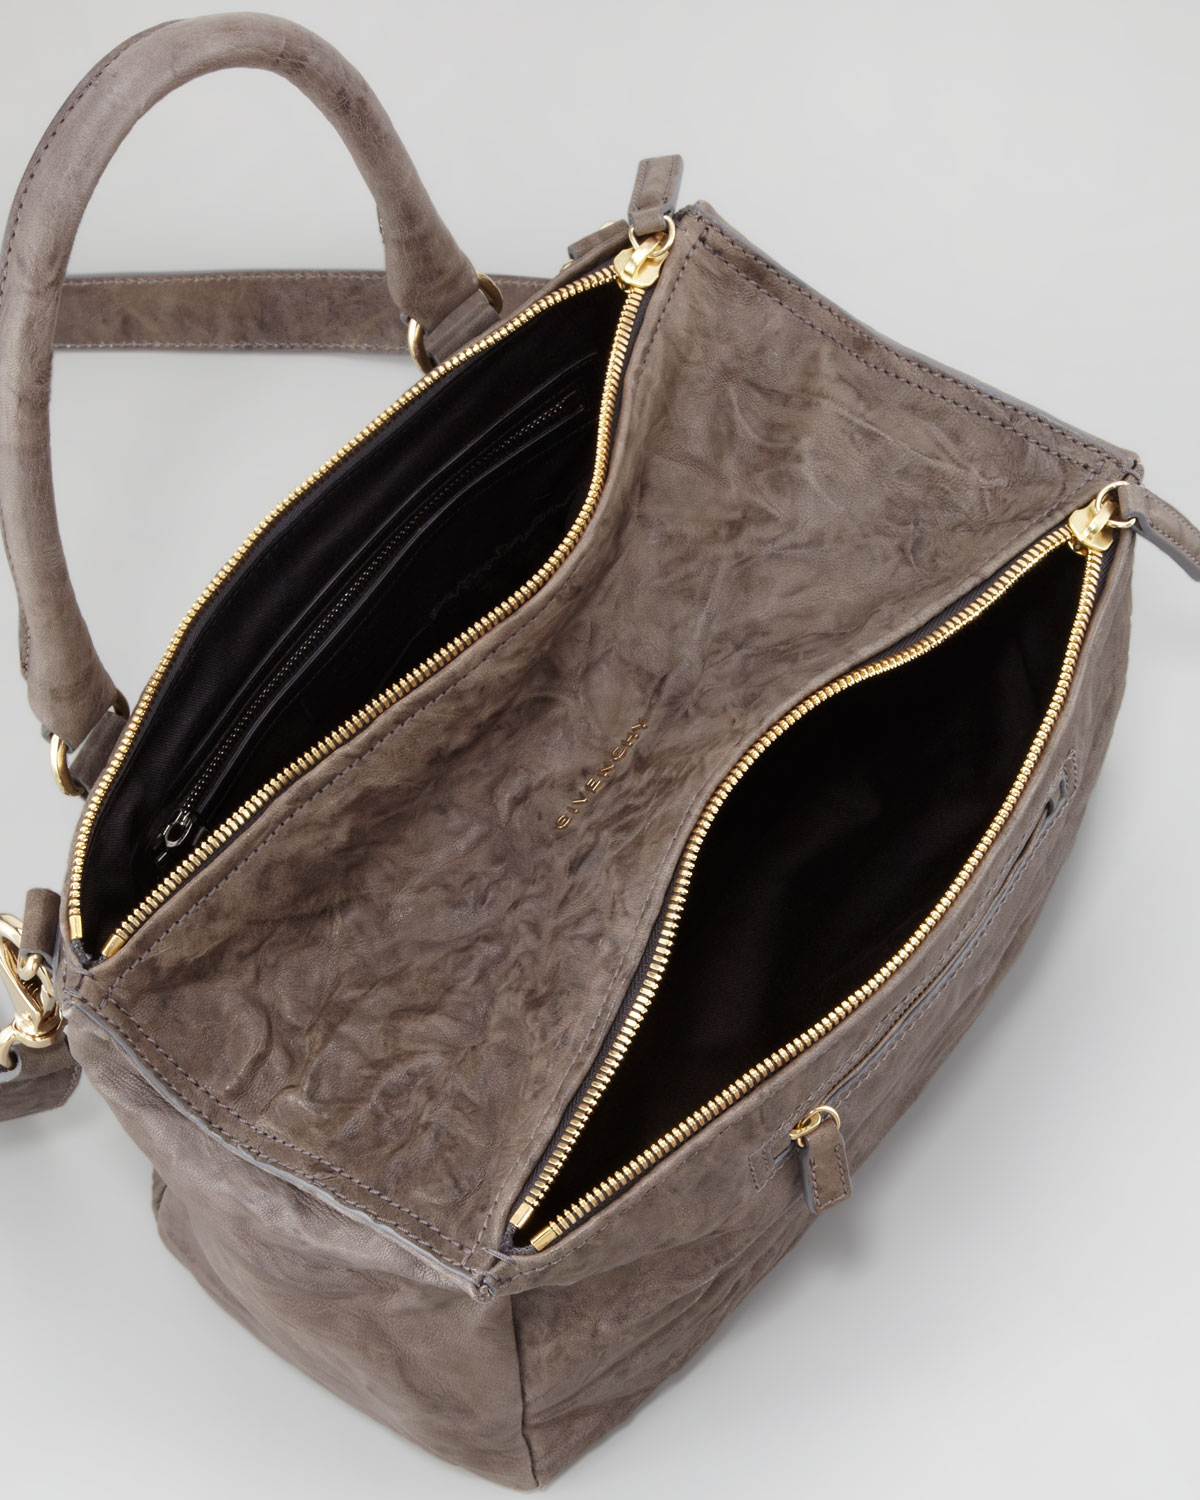 Lyst - Givenchy Pandora Medium Old Pepe Satchel Bag Charcoal in Brown d528d84dc0a7f